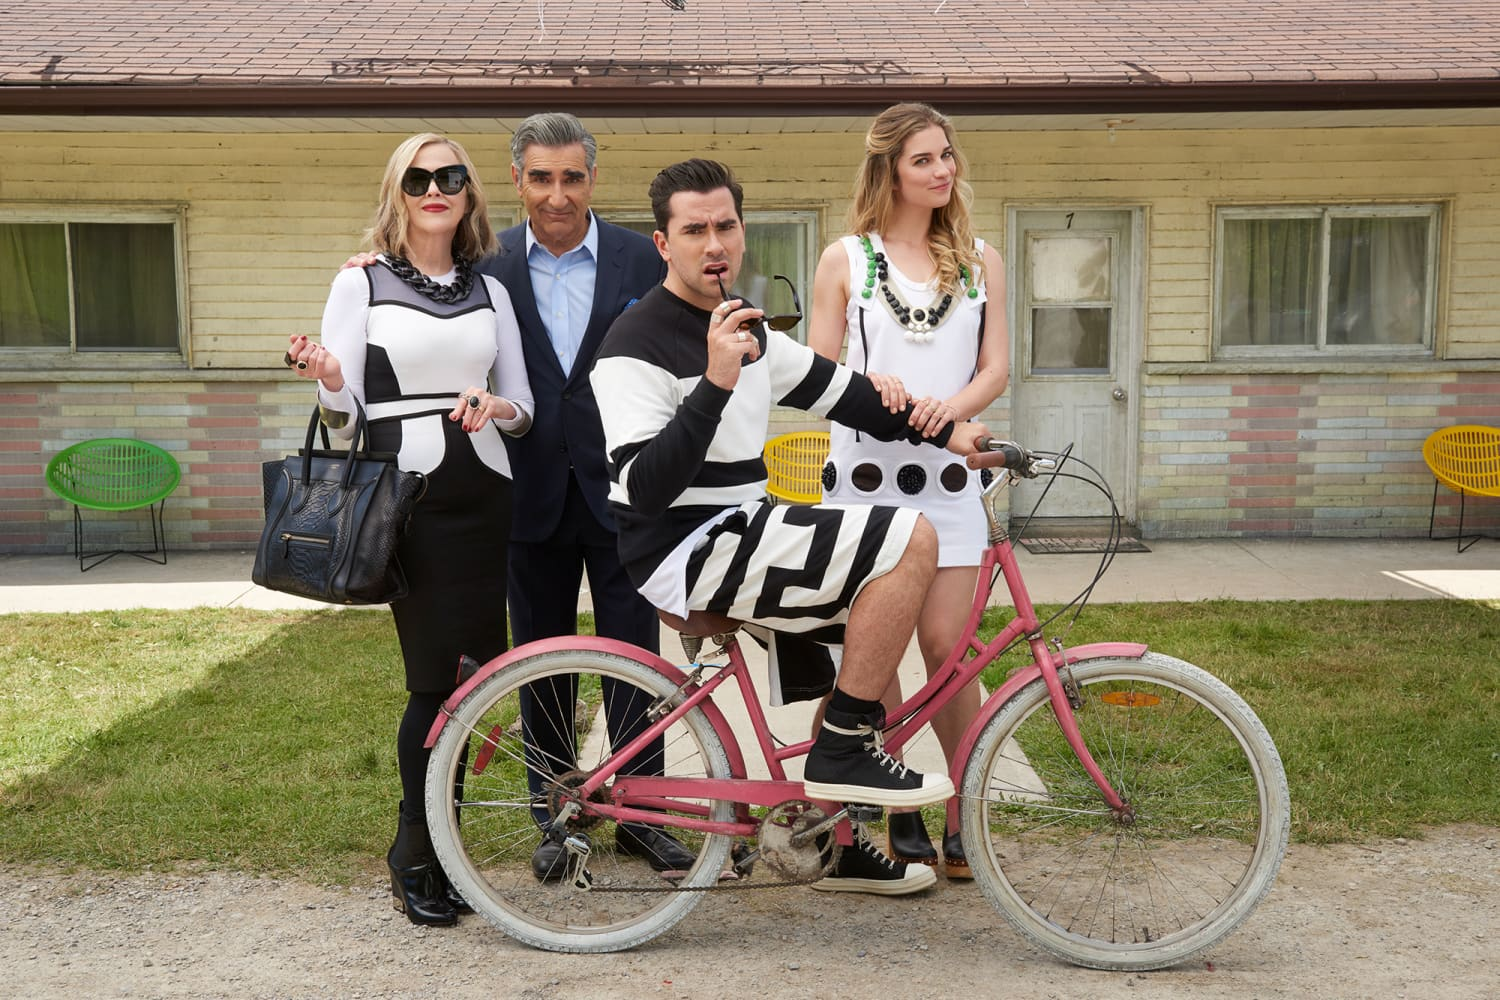 """A """"Schitt's Creek"""" Coffee Table Book Is Coming from Dan and Eugene Levy"""